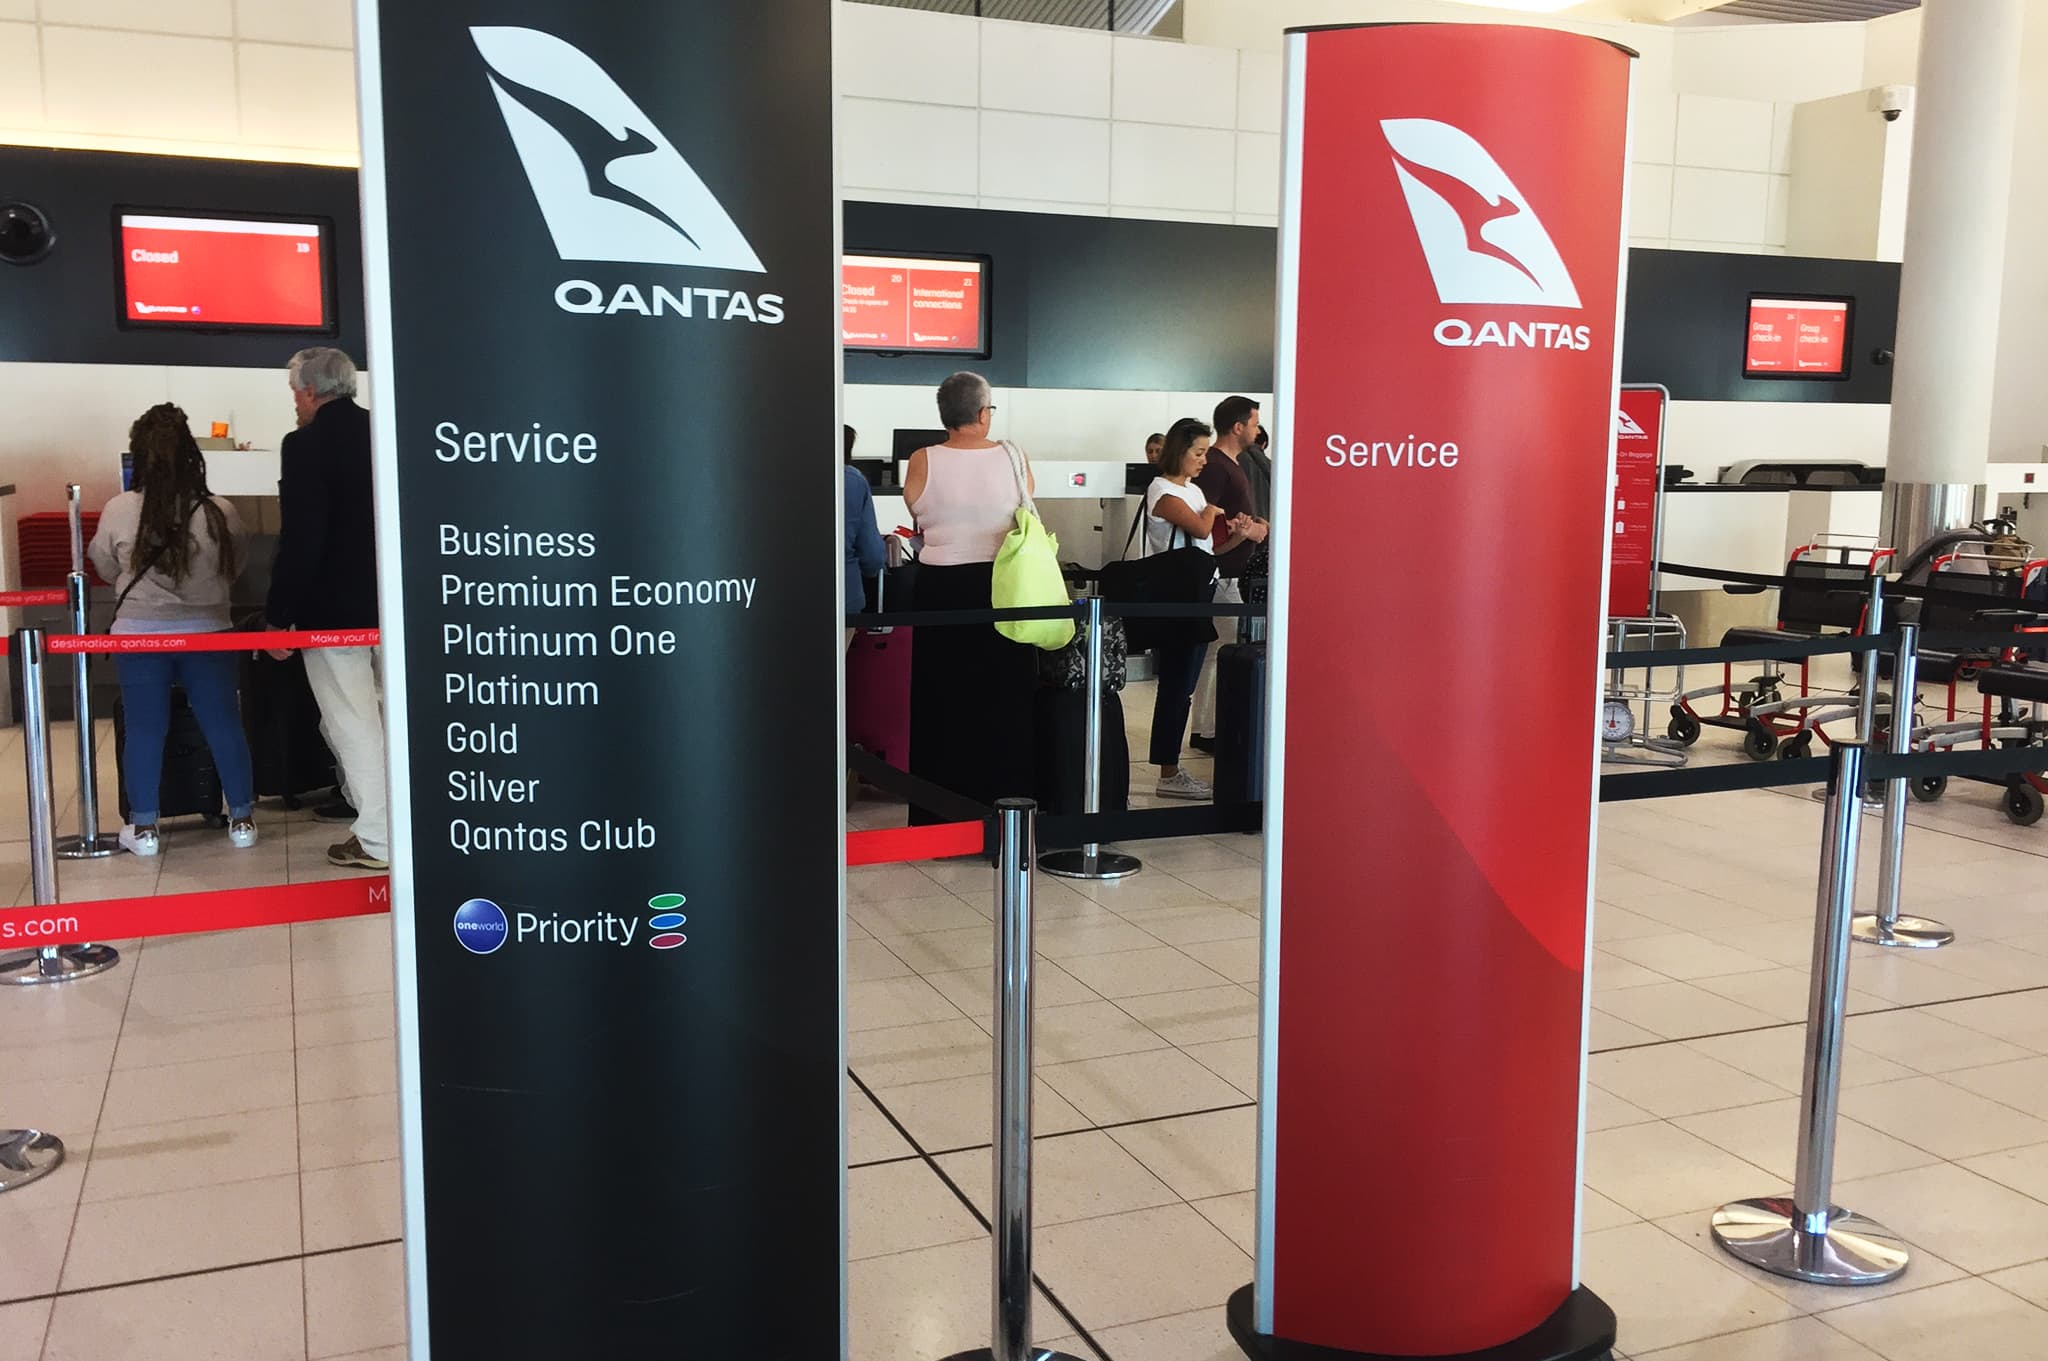 Qantas Business Class A330 Review - Perth to Sydney